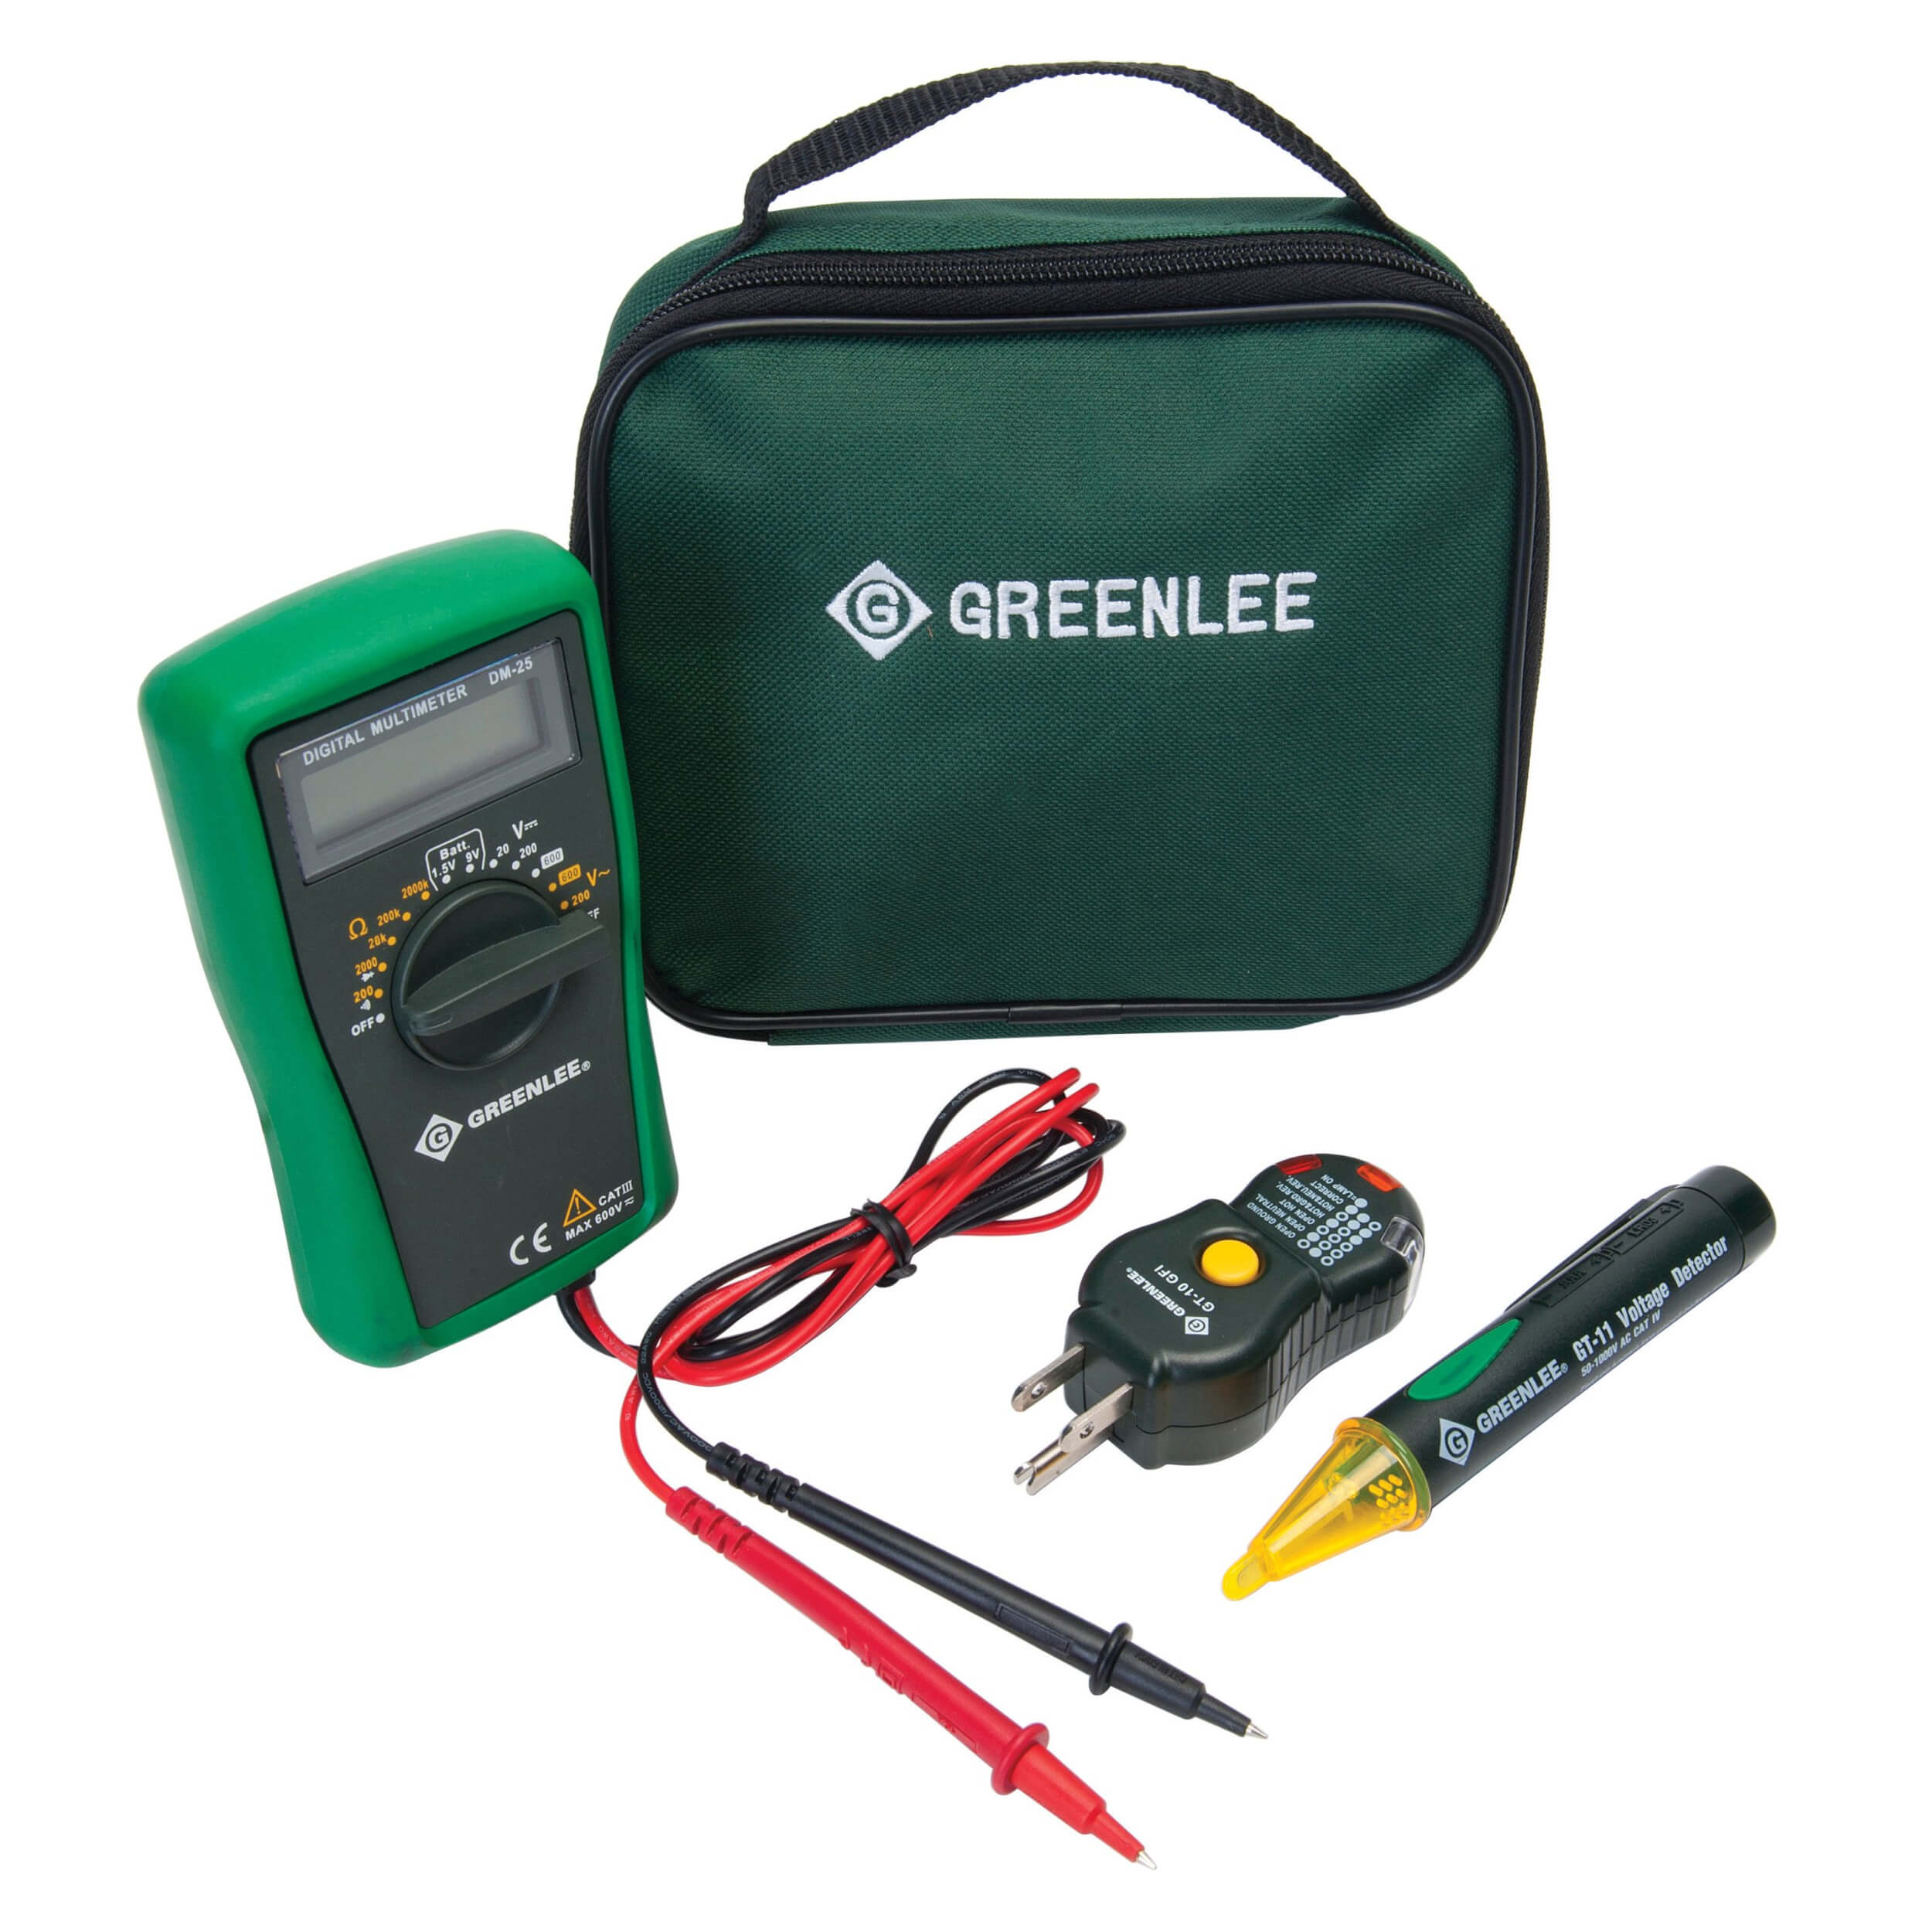 Greenlee TK-30AGFI Electrical Test Kit GFCI